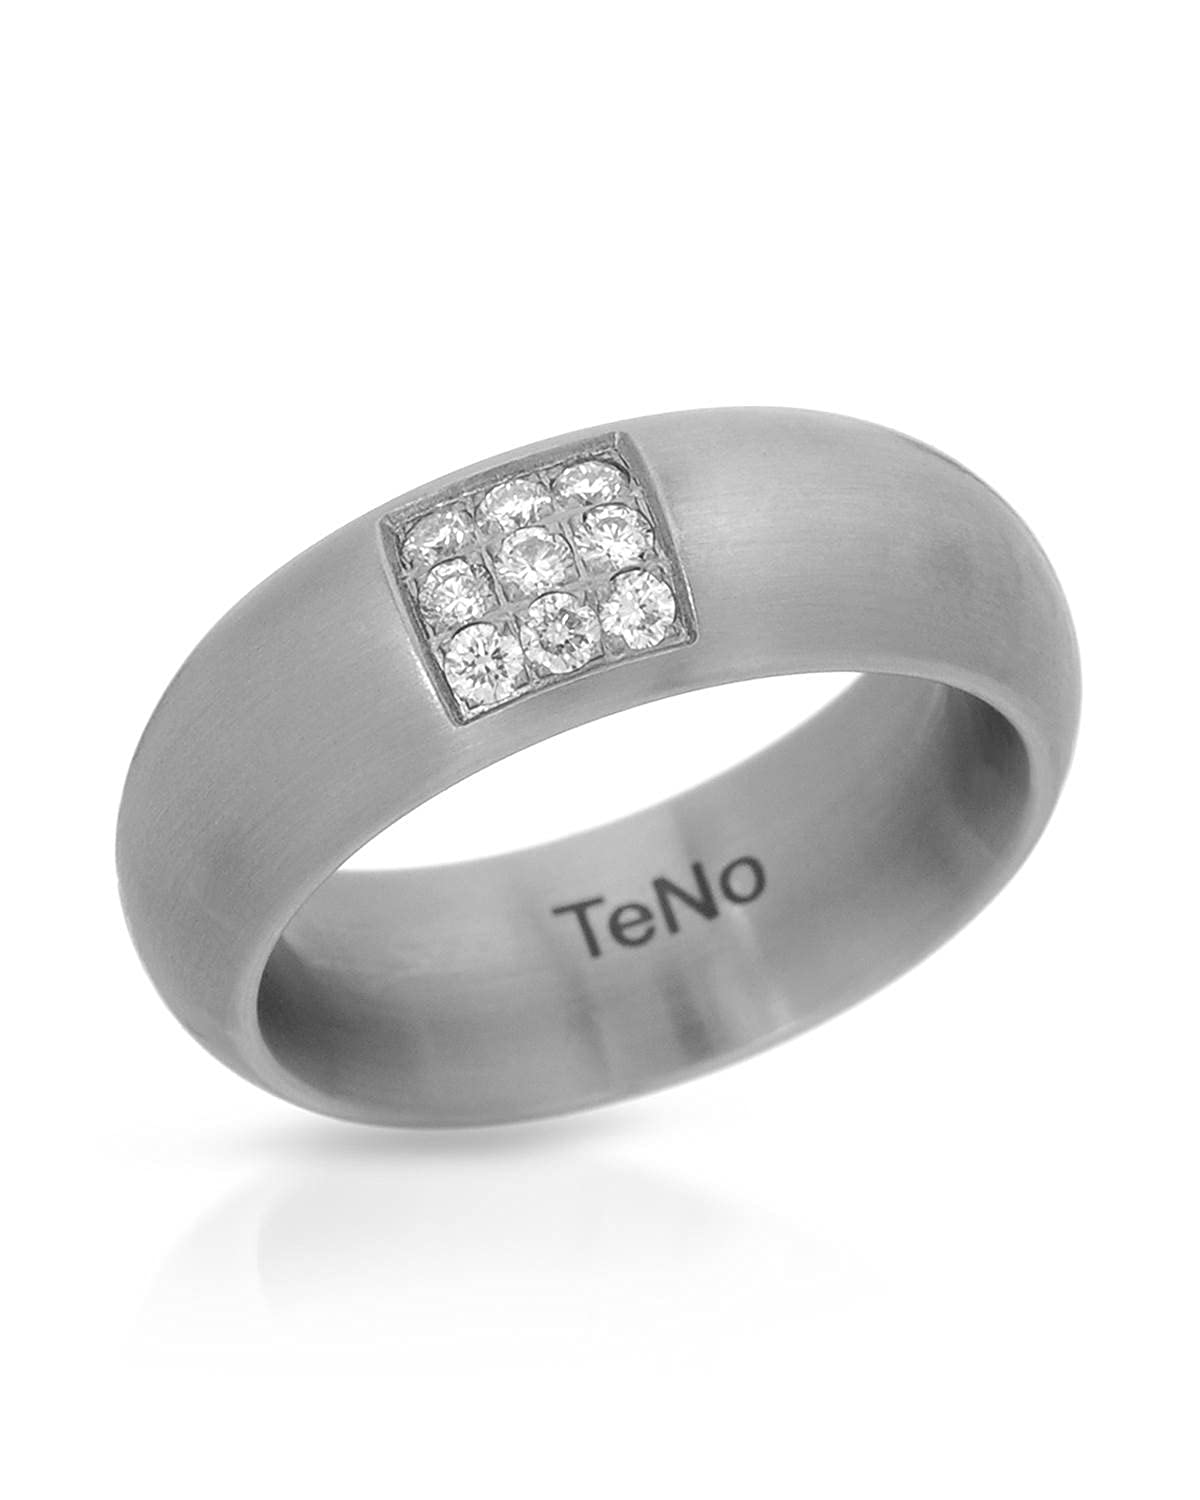 Teno Stainless Steel 0.18 CTW Color F, VS1 Diamond Band Ring.